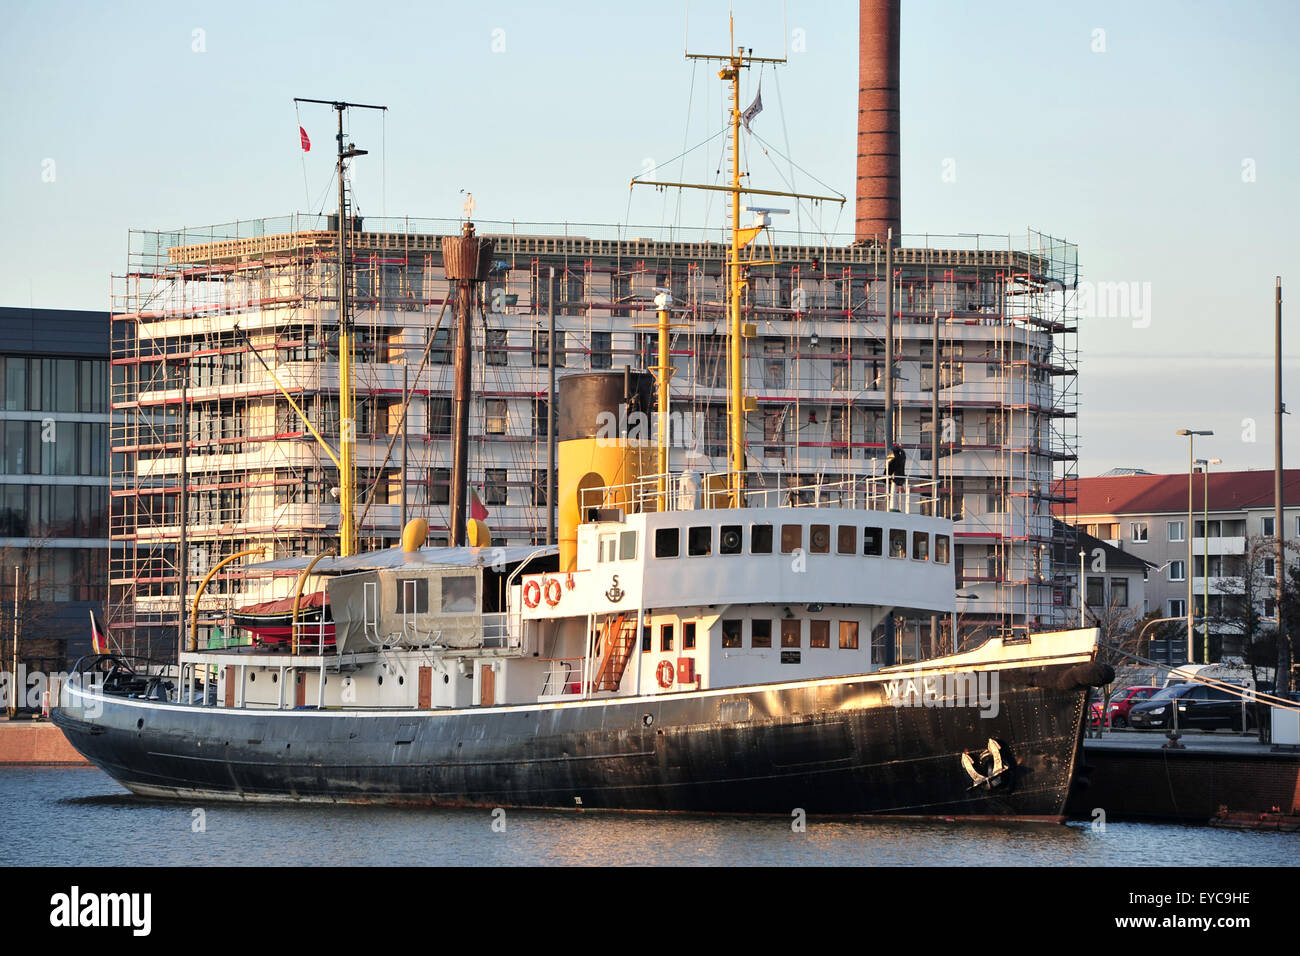 Bremerhaven, Germany, Museum Ship Dampfeisbrecher Whale in the Old Port Stock Photo